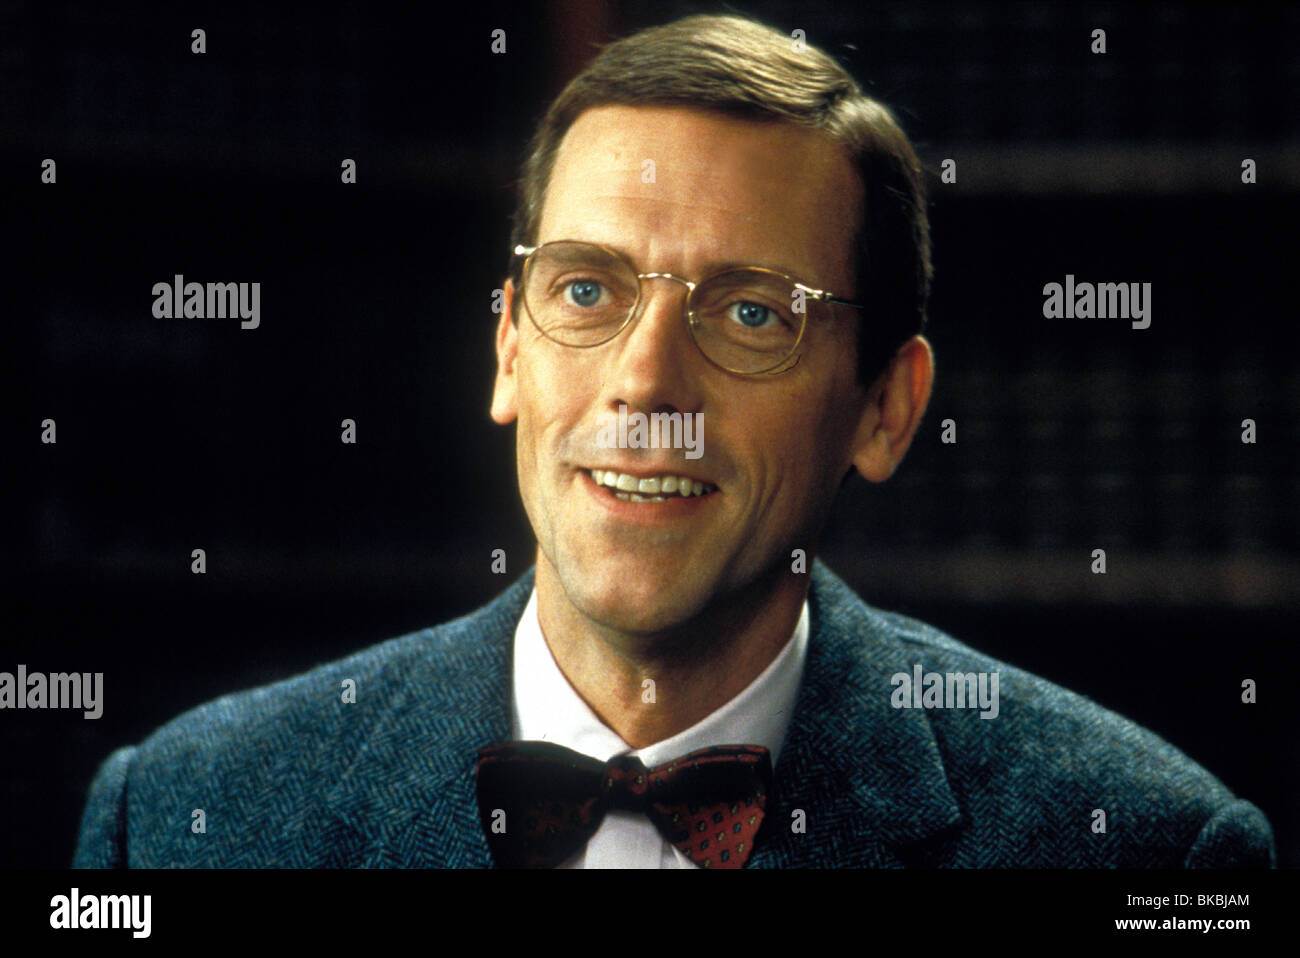 STUART LITTLE (1999) HUGH LAURIE STLT 083 Stock Photo ...